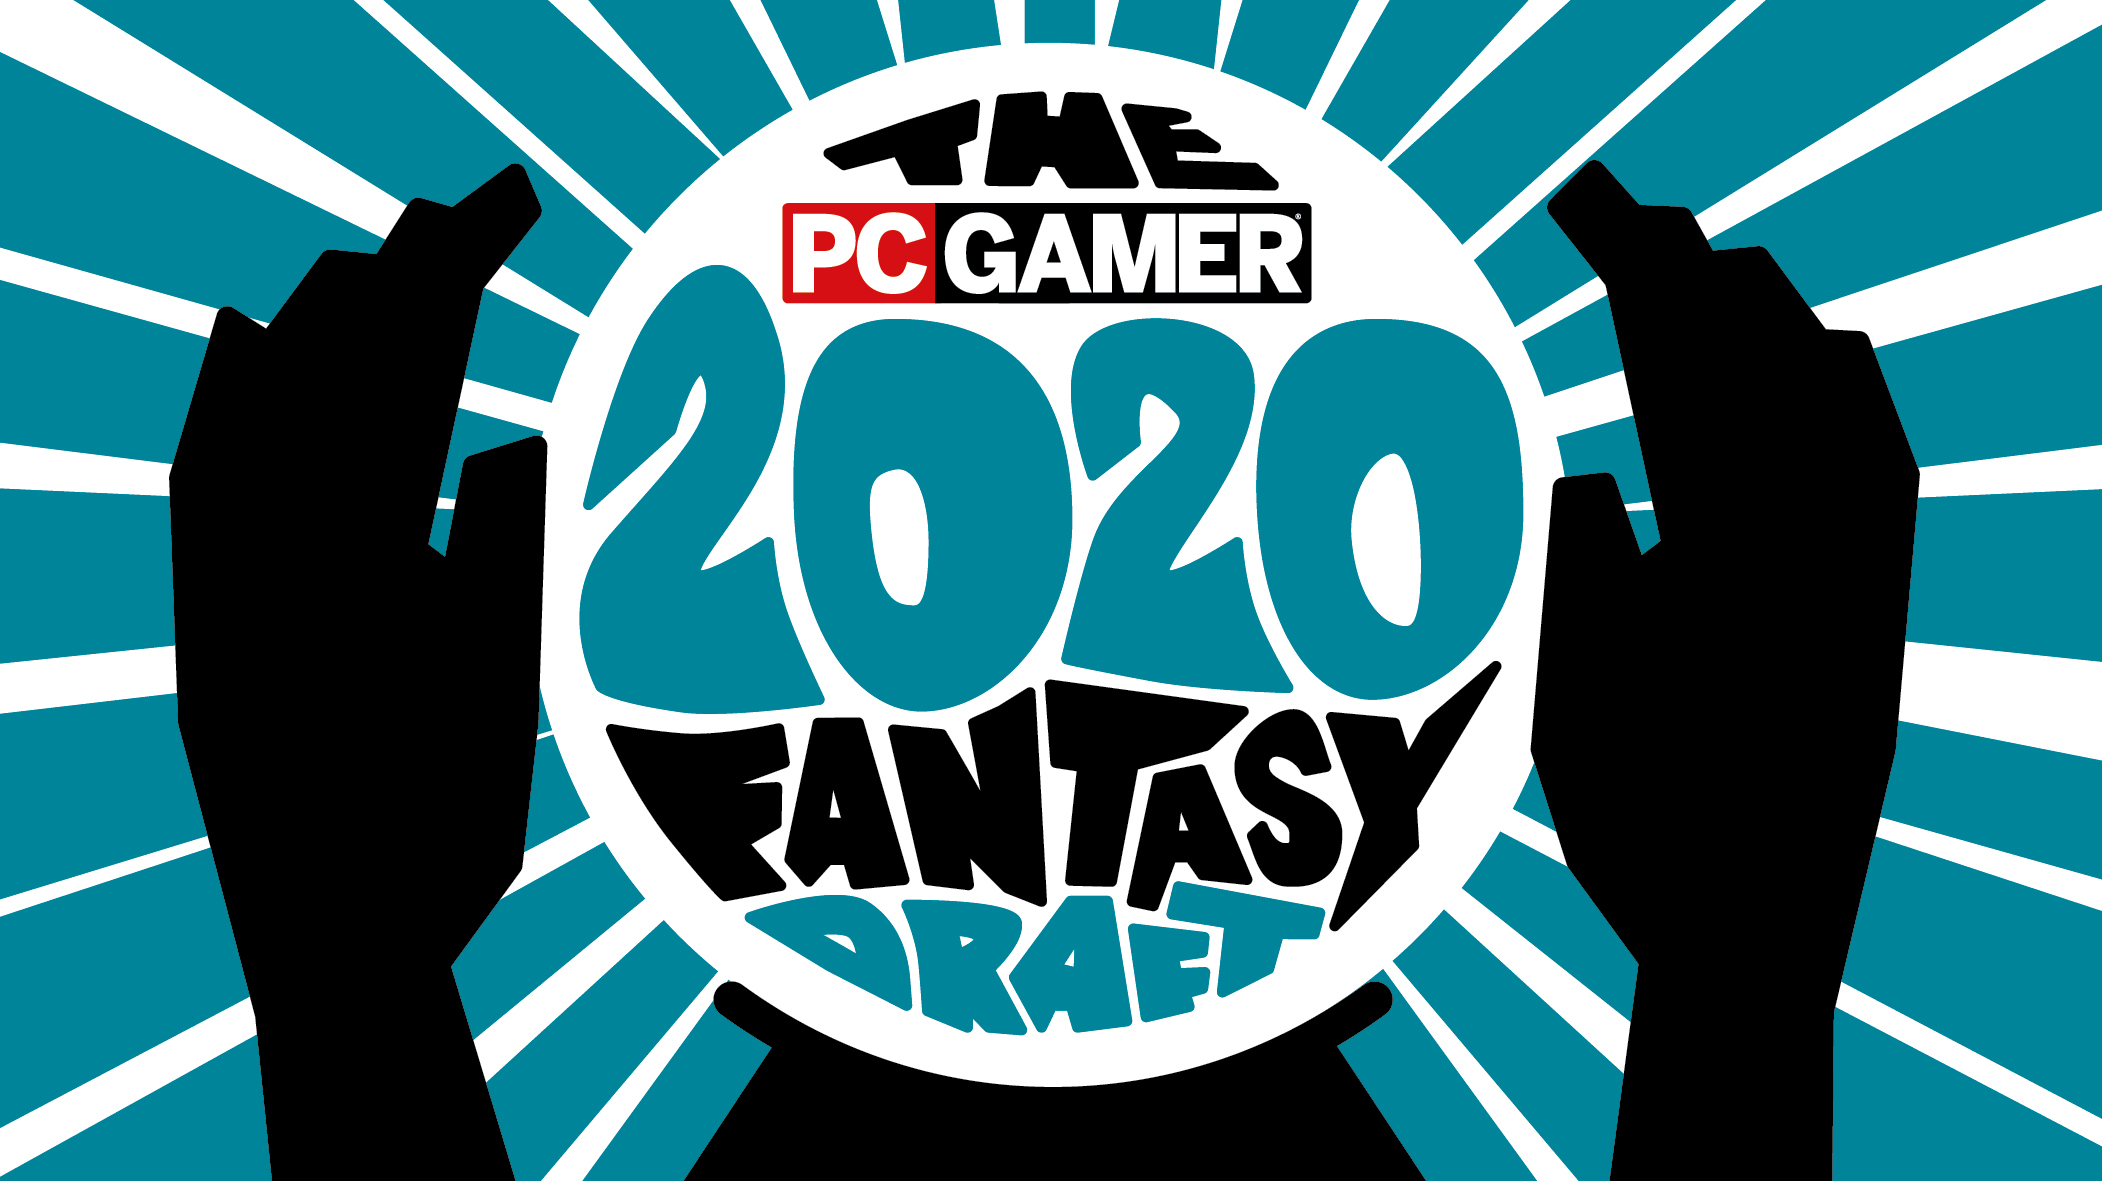 Who won the PC Gamer 2020 Fantasy Draft? Help us decide